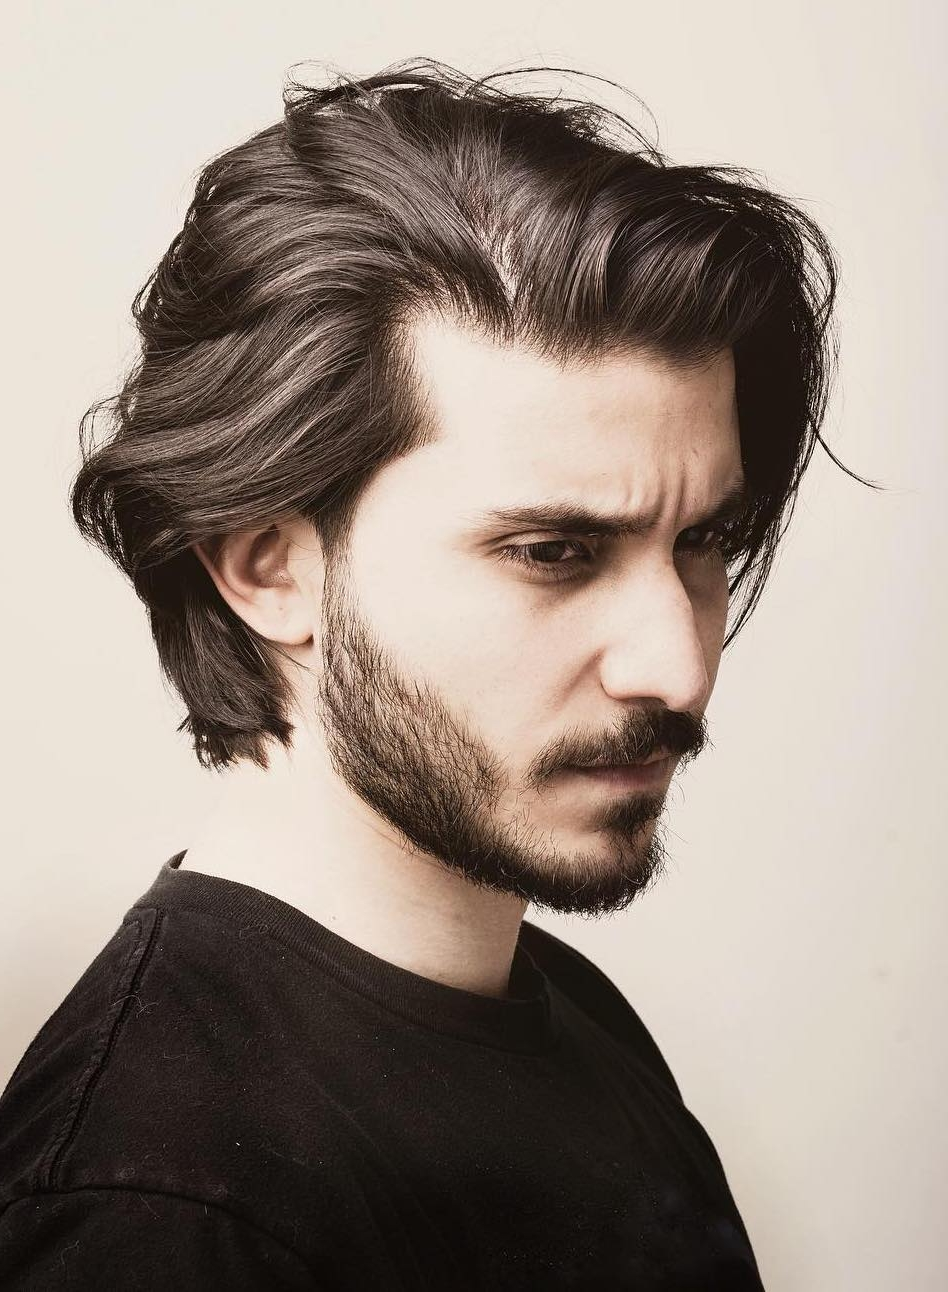 26 Latest Trends In Men'S Hairstyles 2020 | Latest Men 20+ Awesome Mens Medium Length Hairstyles 2020